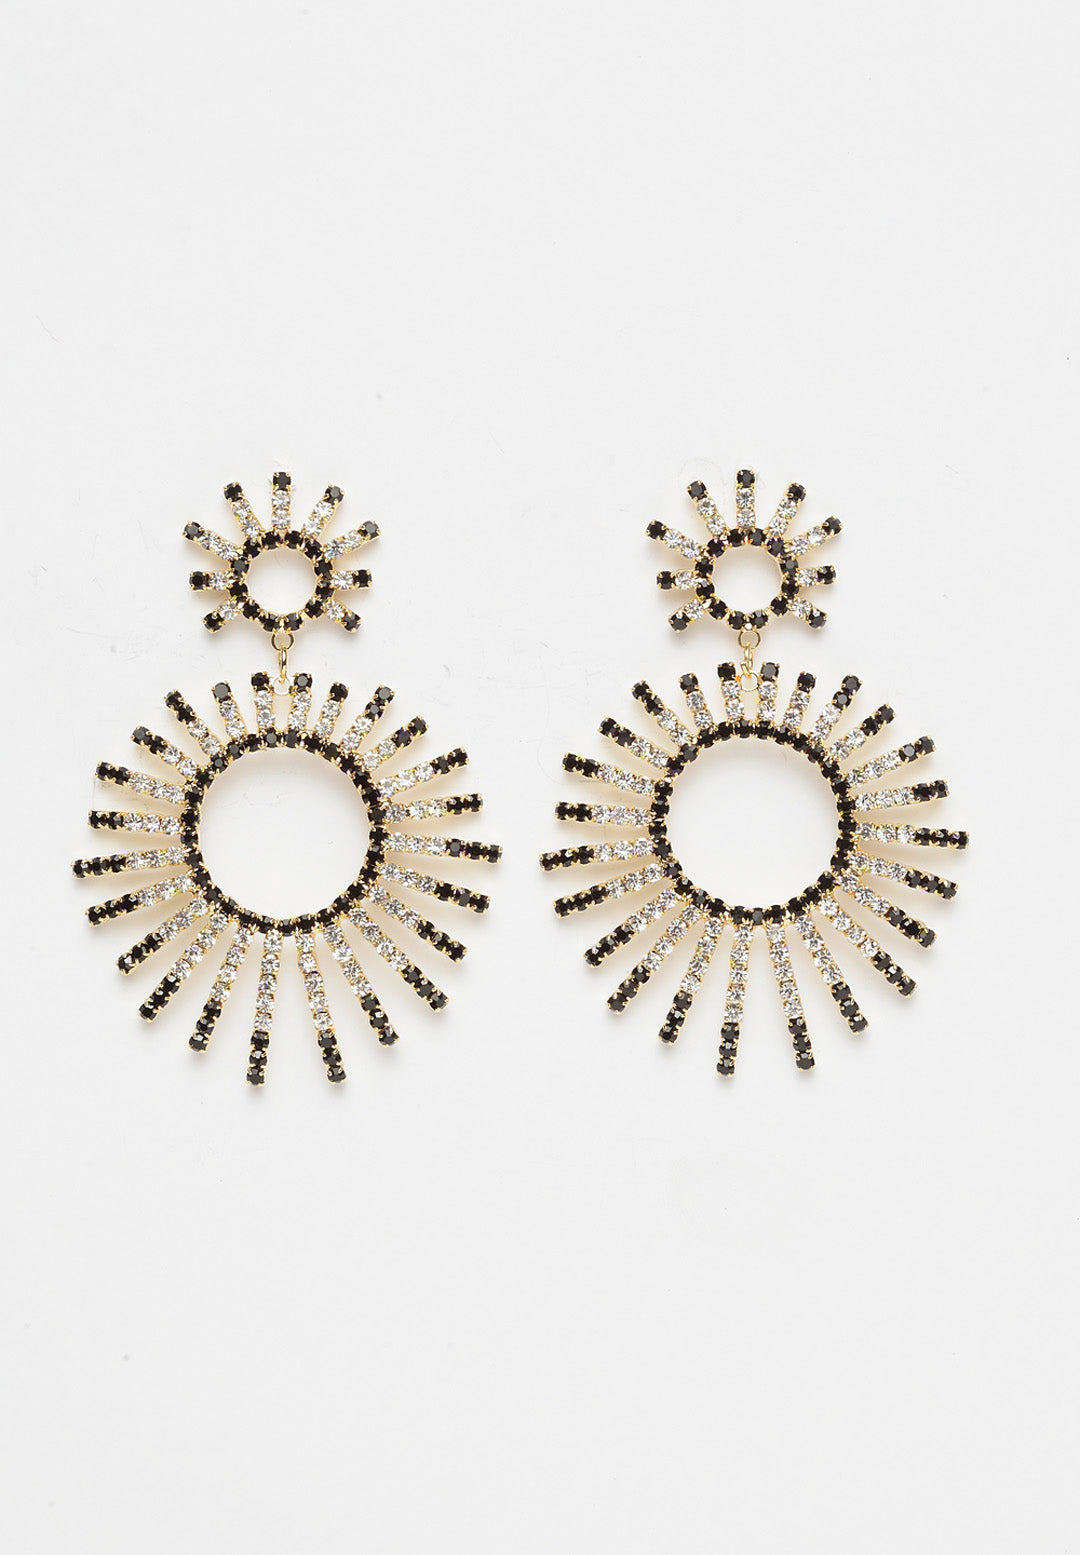 Avant-Garde Paris Circular Spiked Black Earrings